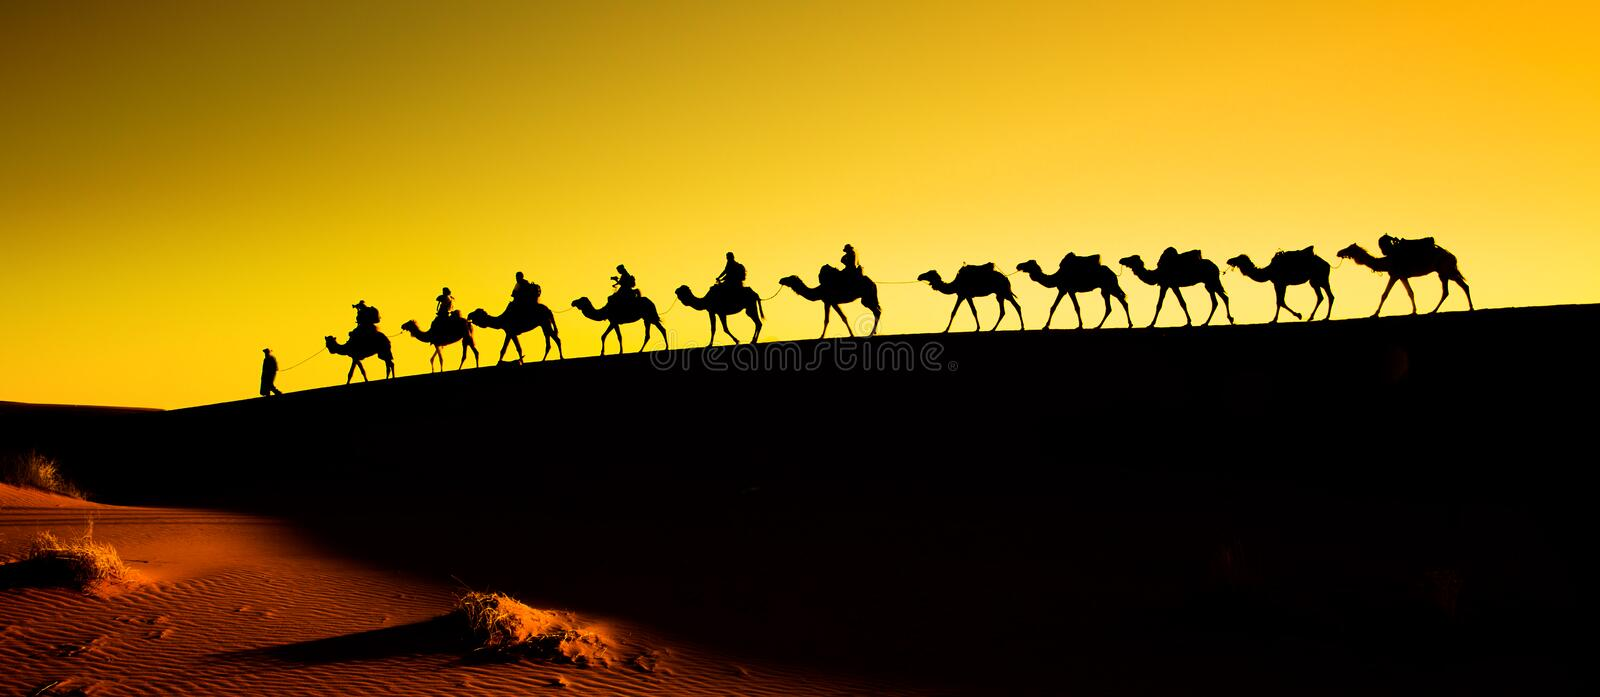 Download Silhouette Of A Camel Caravan Stock Image - Image: 39538197